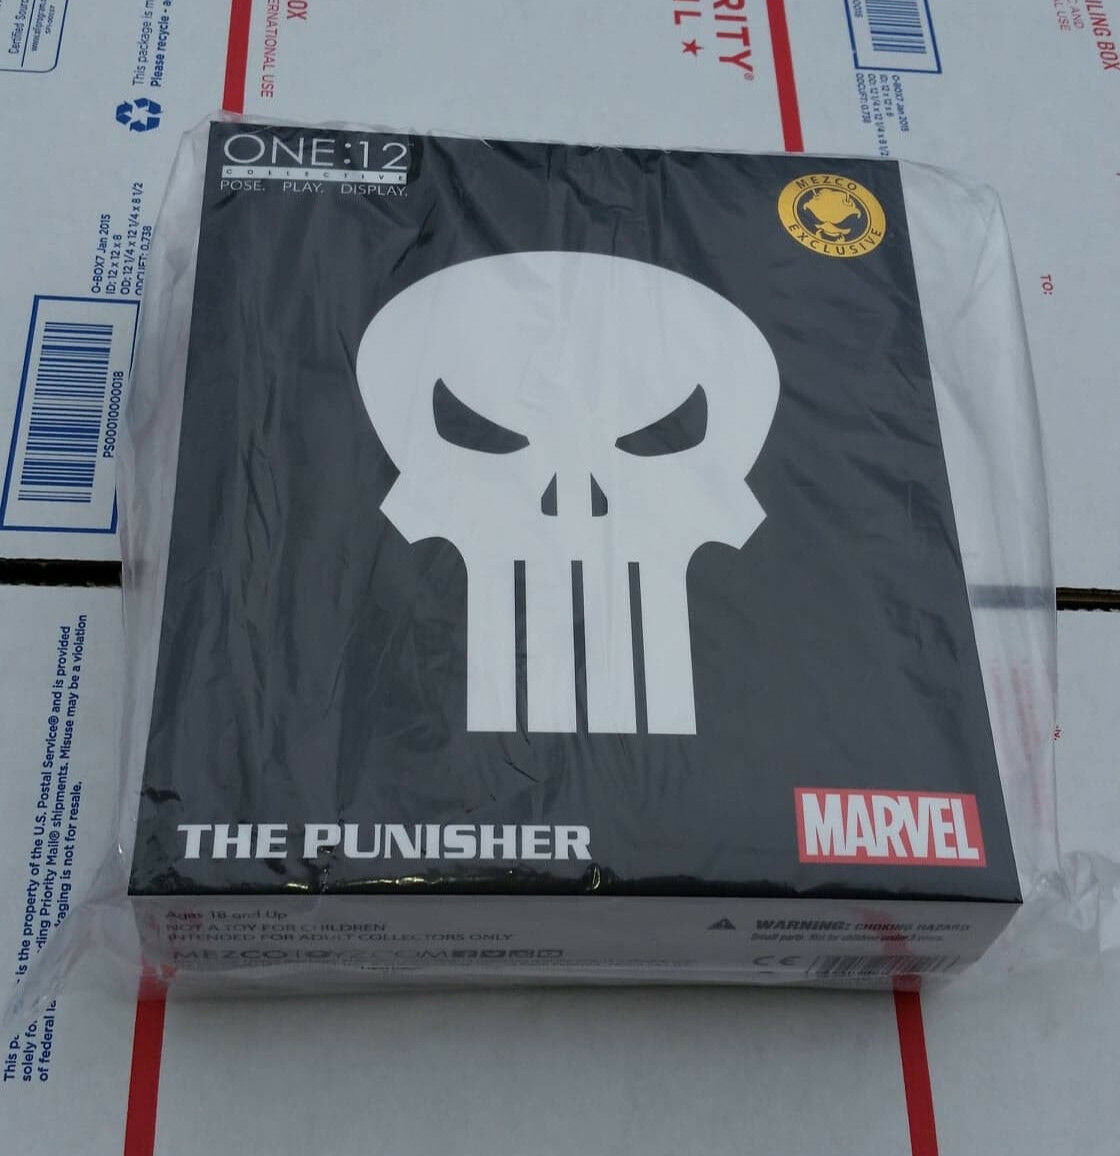 SDCC Mezco One 12 Special Ops Punisher Action Figure Exclusive Brand New